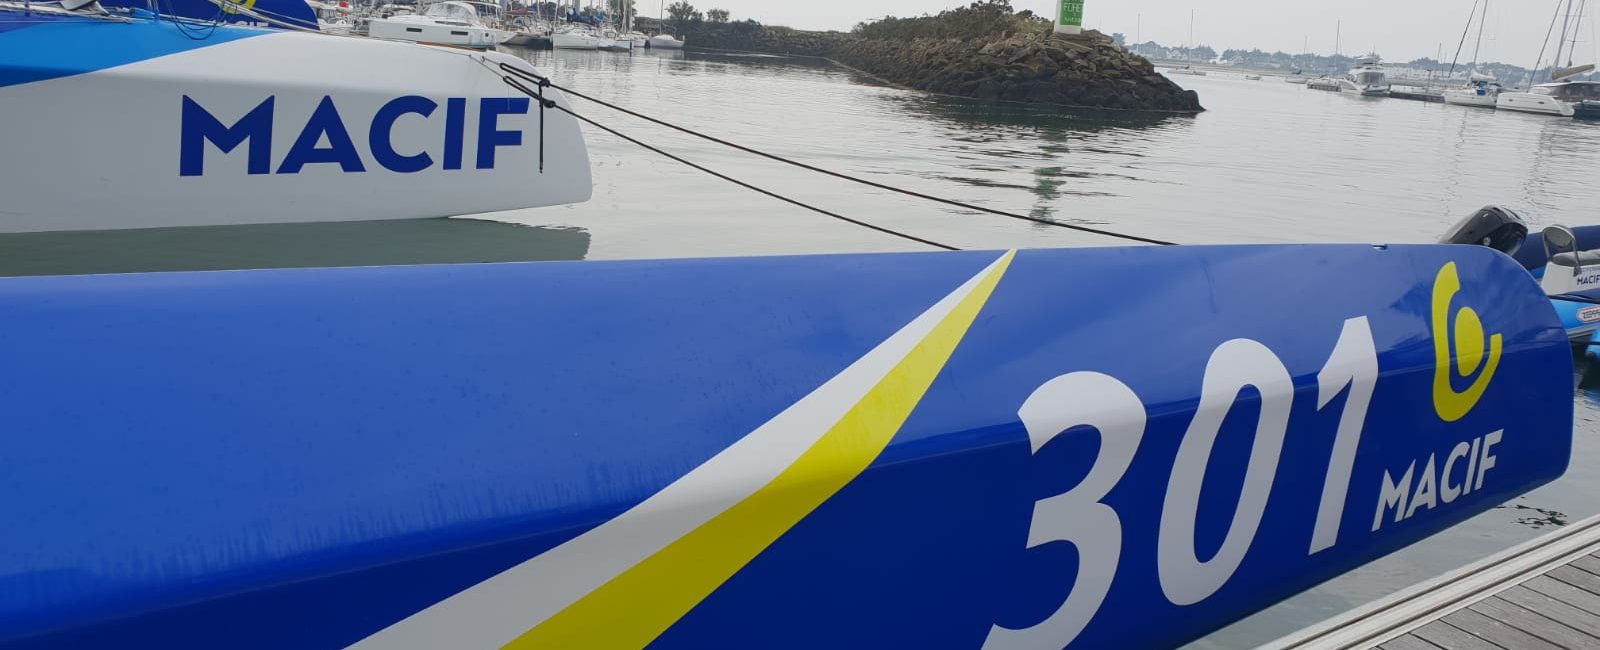 Premier check-up pour la V2 du trimaran MACIF